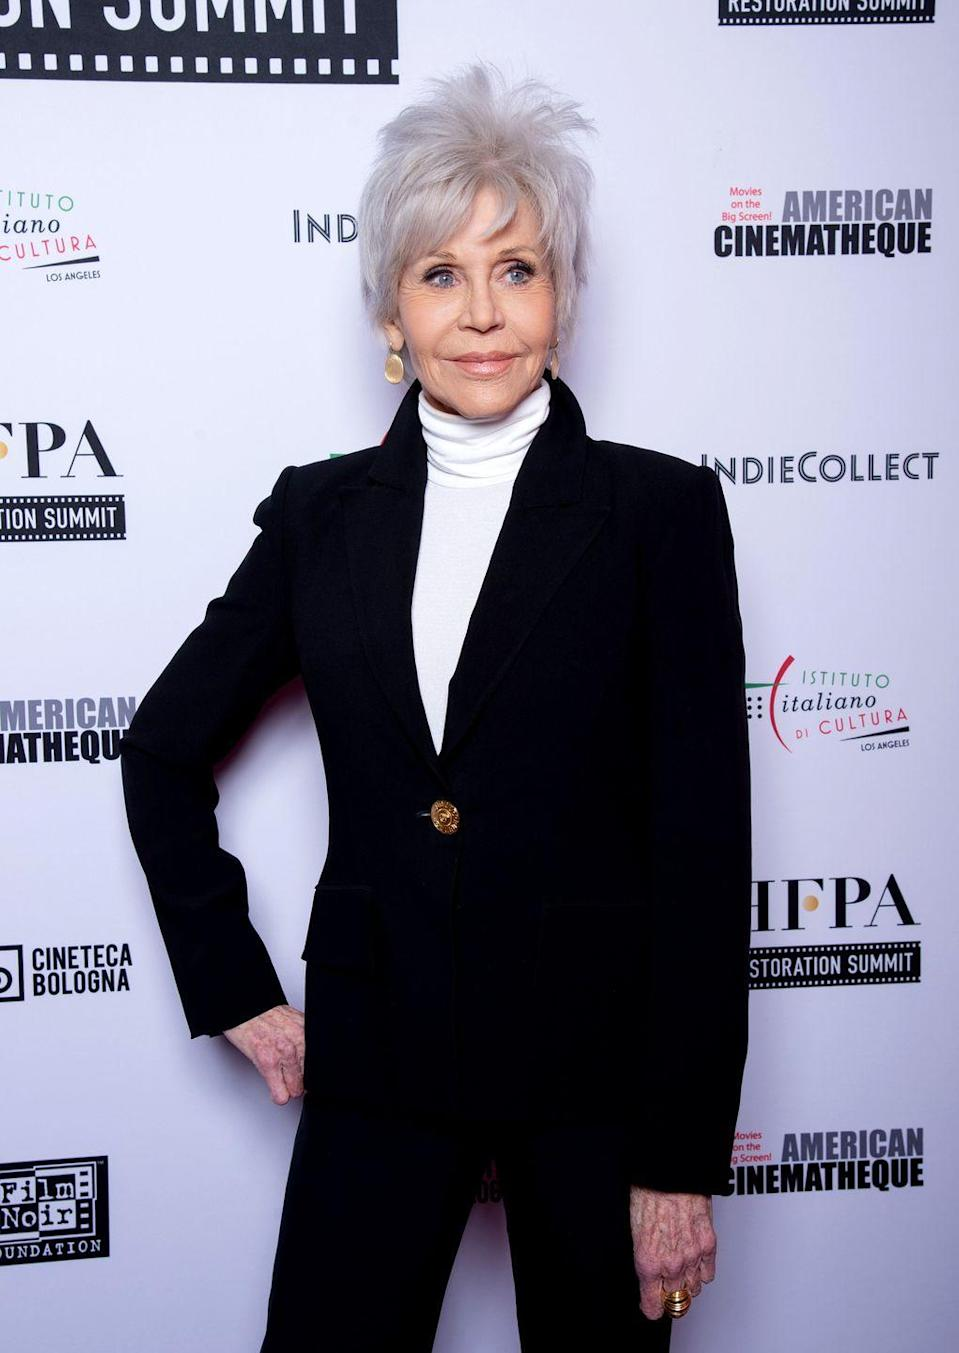 """<p><a href=""""https://www.prevention.com/beauty/hair/a30854672/jane-fonda-gray-hair-oscars-2020/"""" rel=""""nofollow noopener"""" target=""""_blank"""" data-ylk=""""slk:Jane Fonda debuted a silvery-white color at the 2020 Academy Awards"""" class=""""link rapid-noclick-resp"""">Jane Fonda debuted a silvery-white color at the 2020 Academy Awards</a>, inspiring people everywhere to go gray. Ask your colorist for a mix between white and silver to really stand out. When you're roots grow in, they will blend right in with your new color.</p>"""